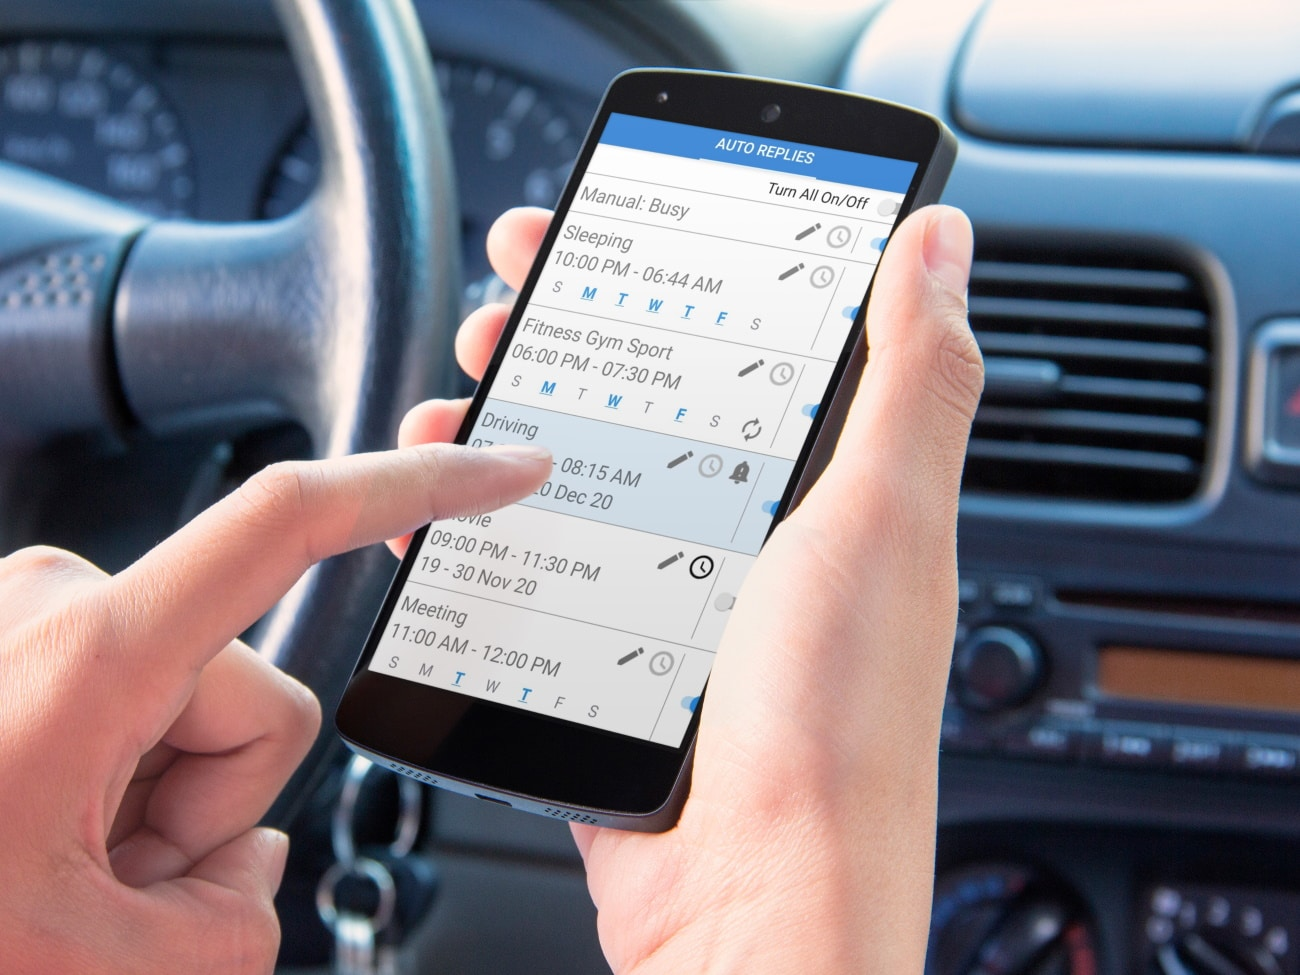 Auto Reply while Driving App N1- Drive Safely!